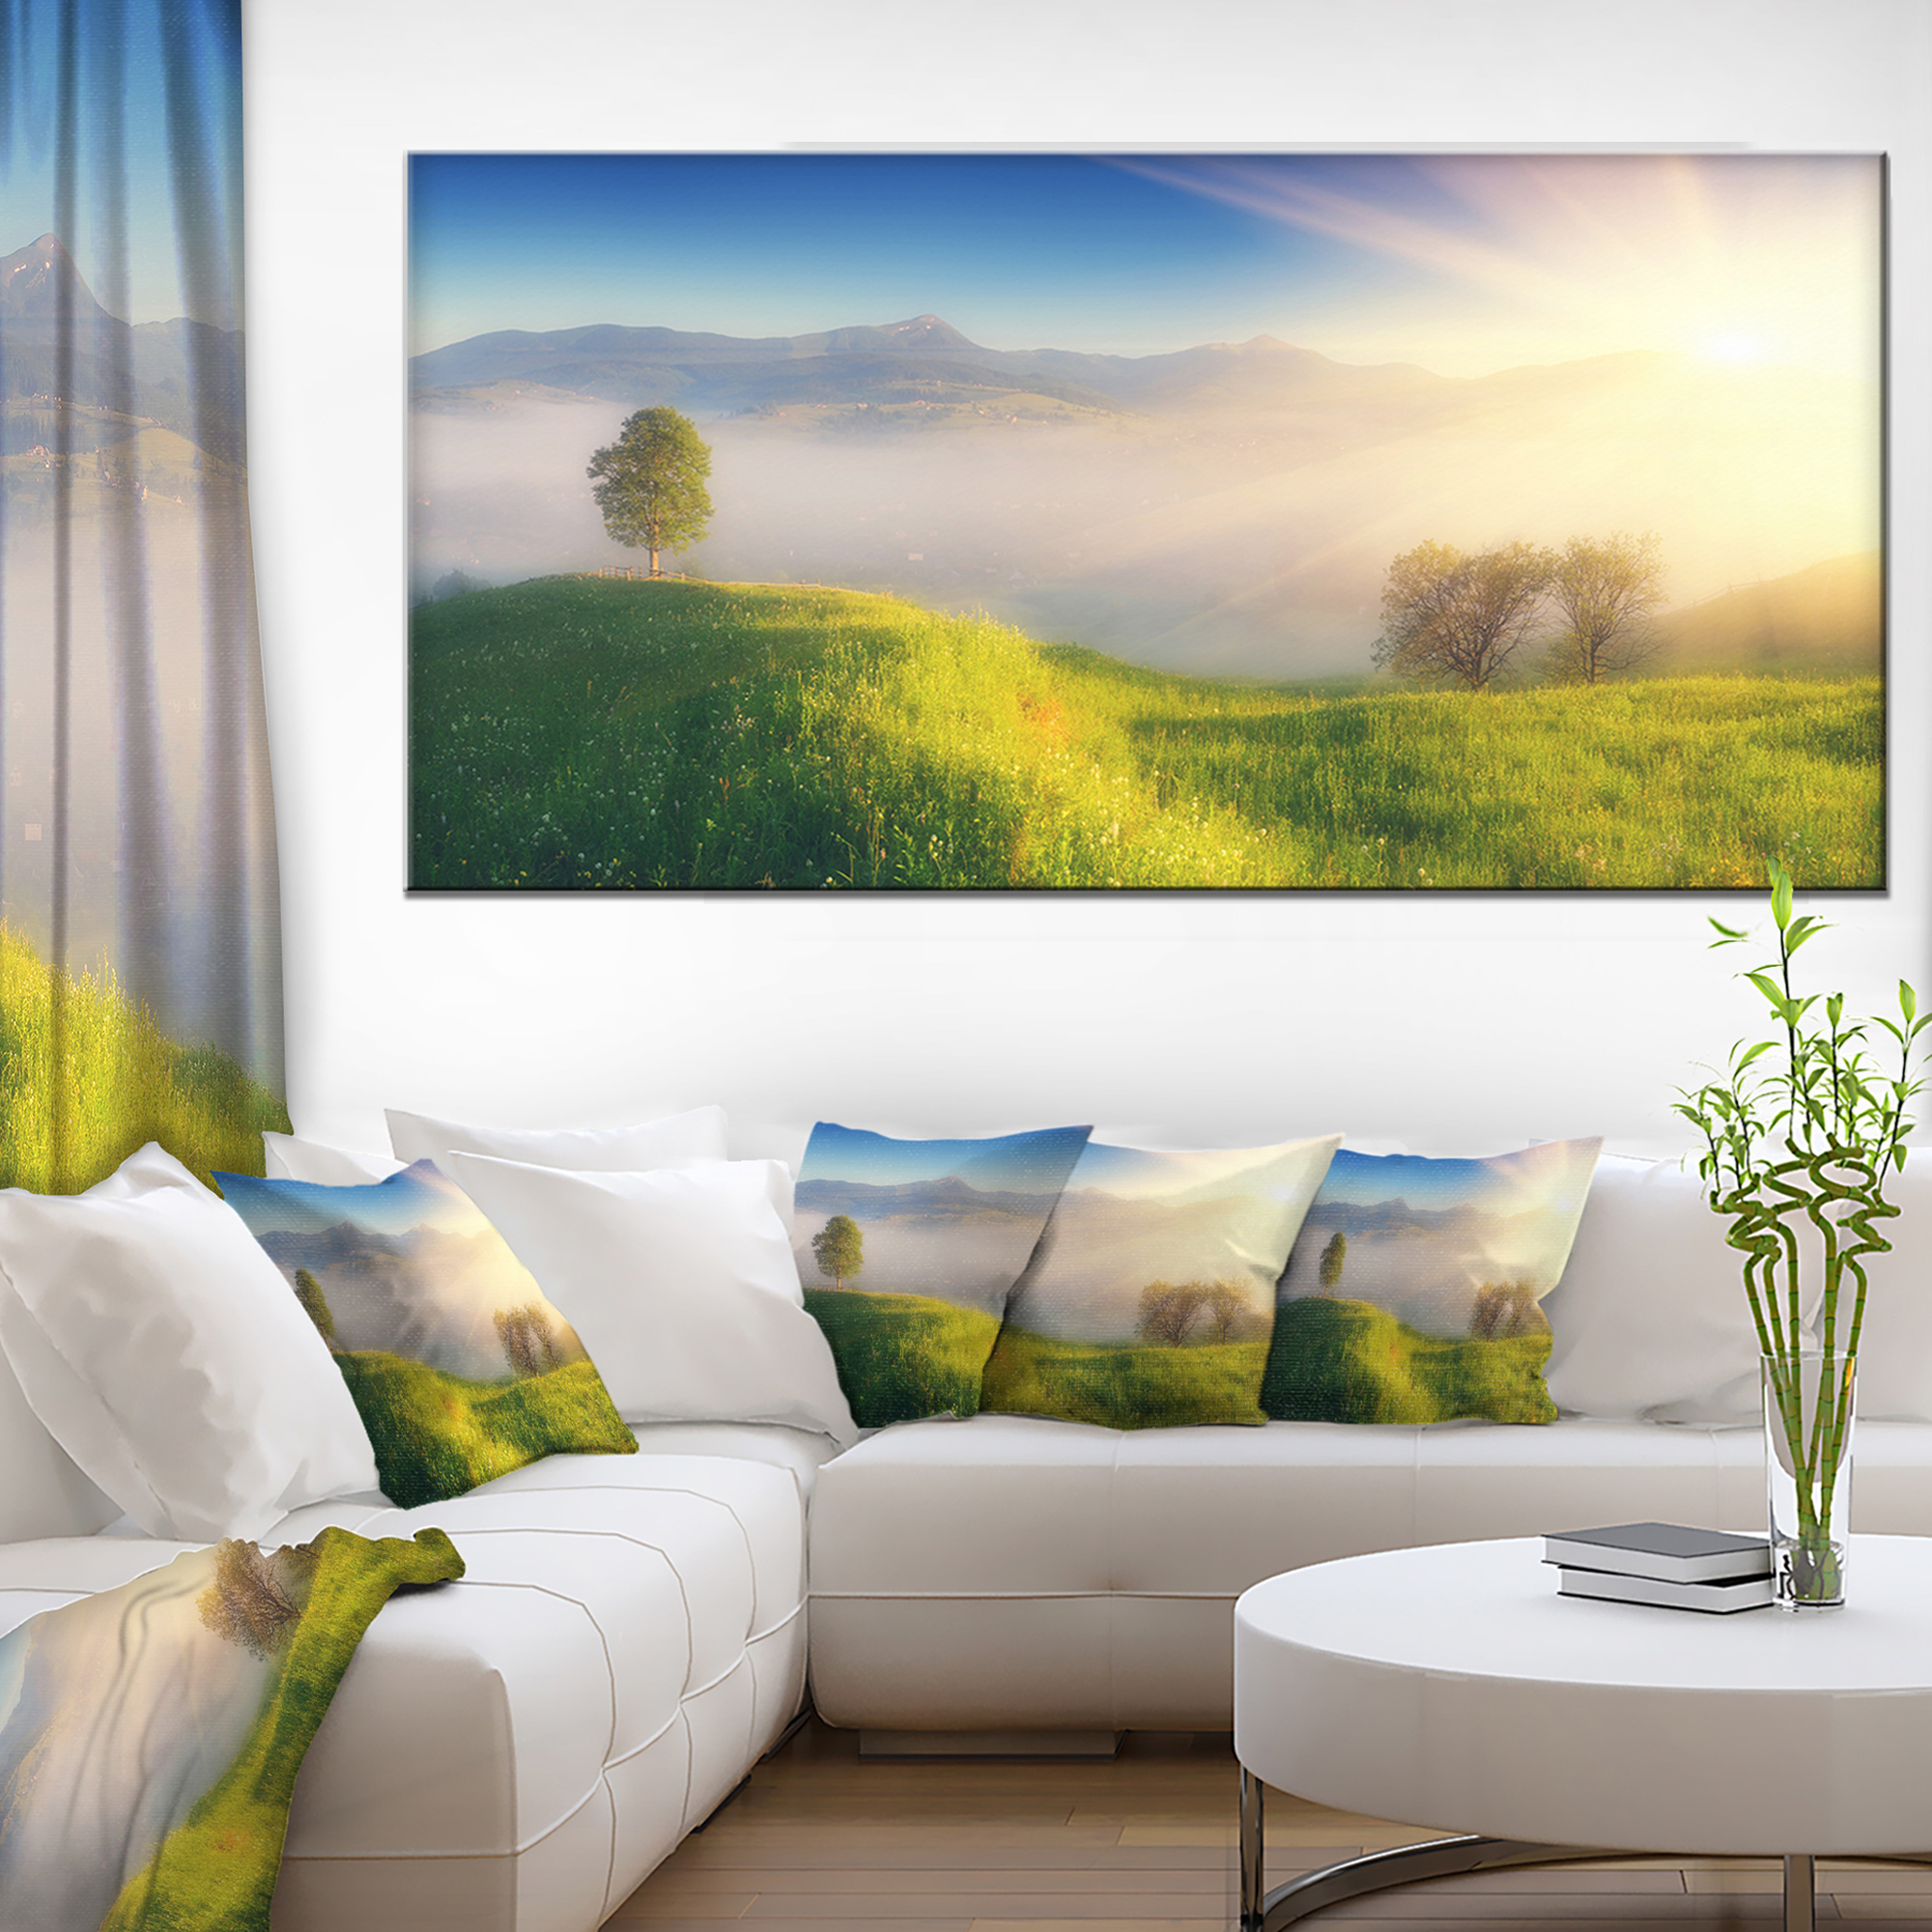 Morning Mist Over Mountain Village Extra Large Landscape Canvas Art Print Walmart Canada